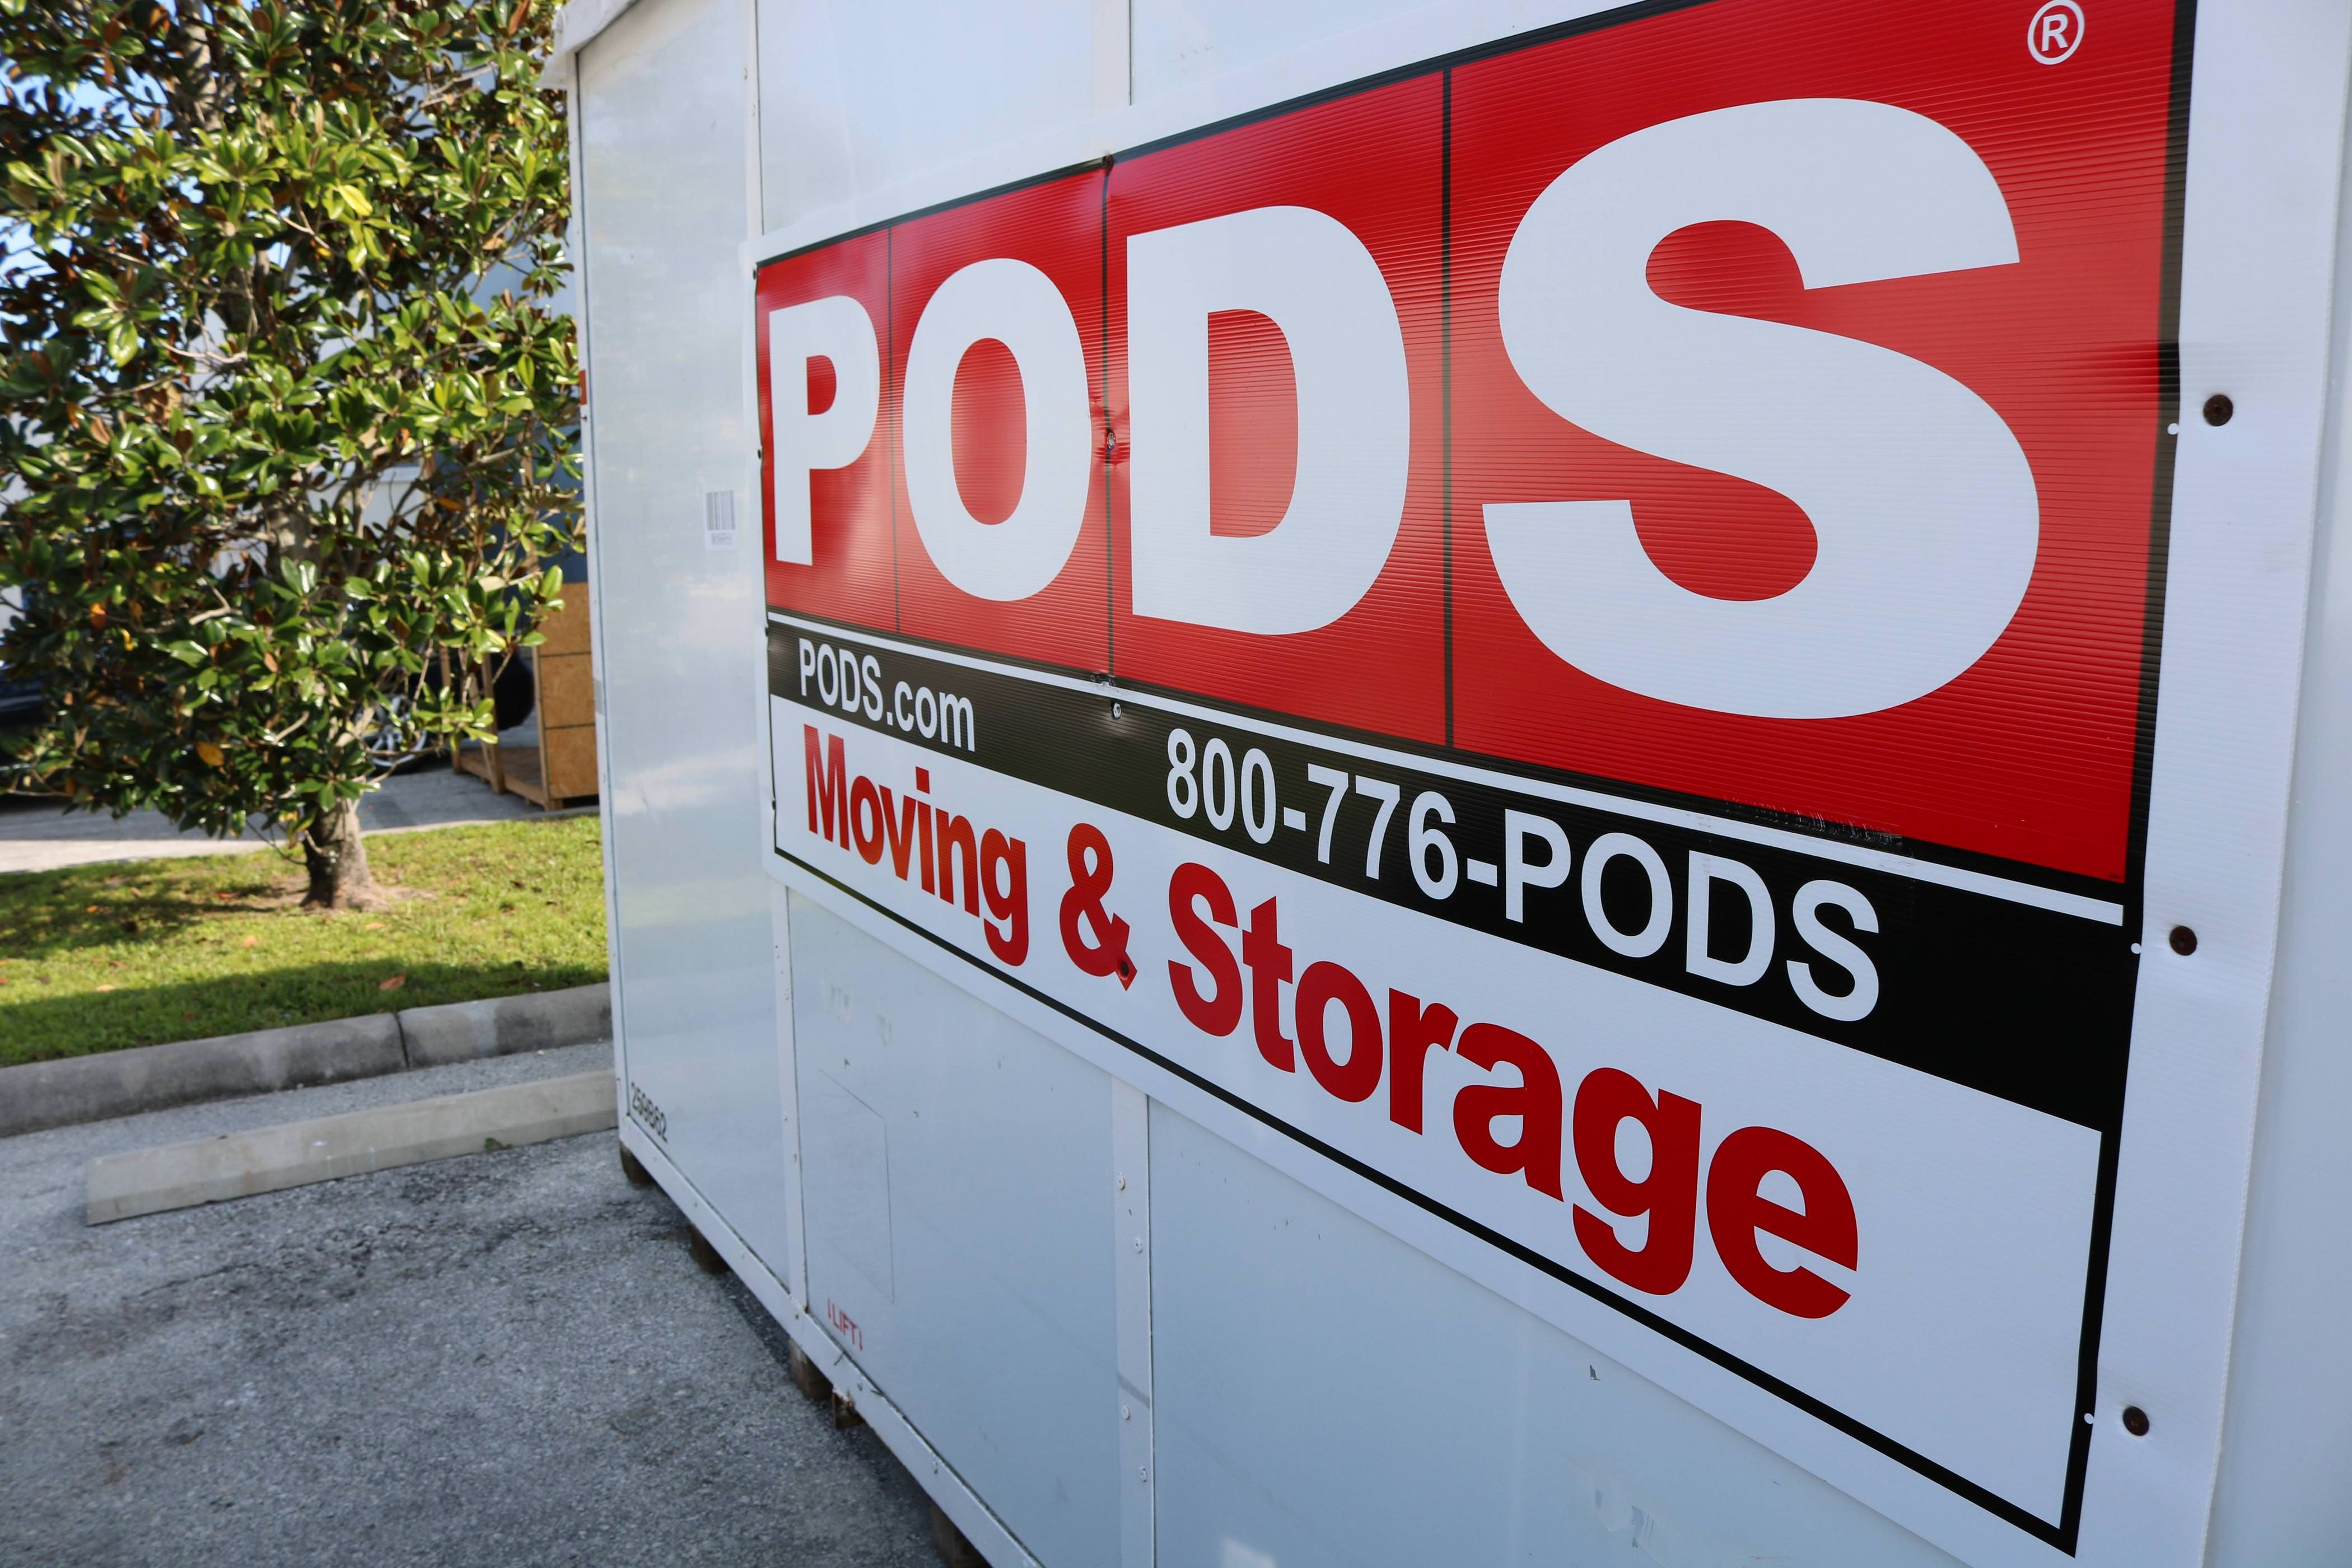 PODS - Cleveland, OH